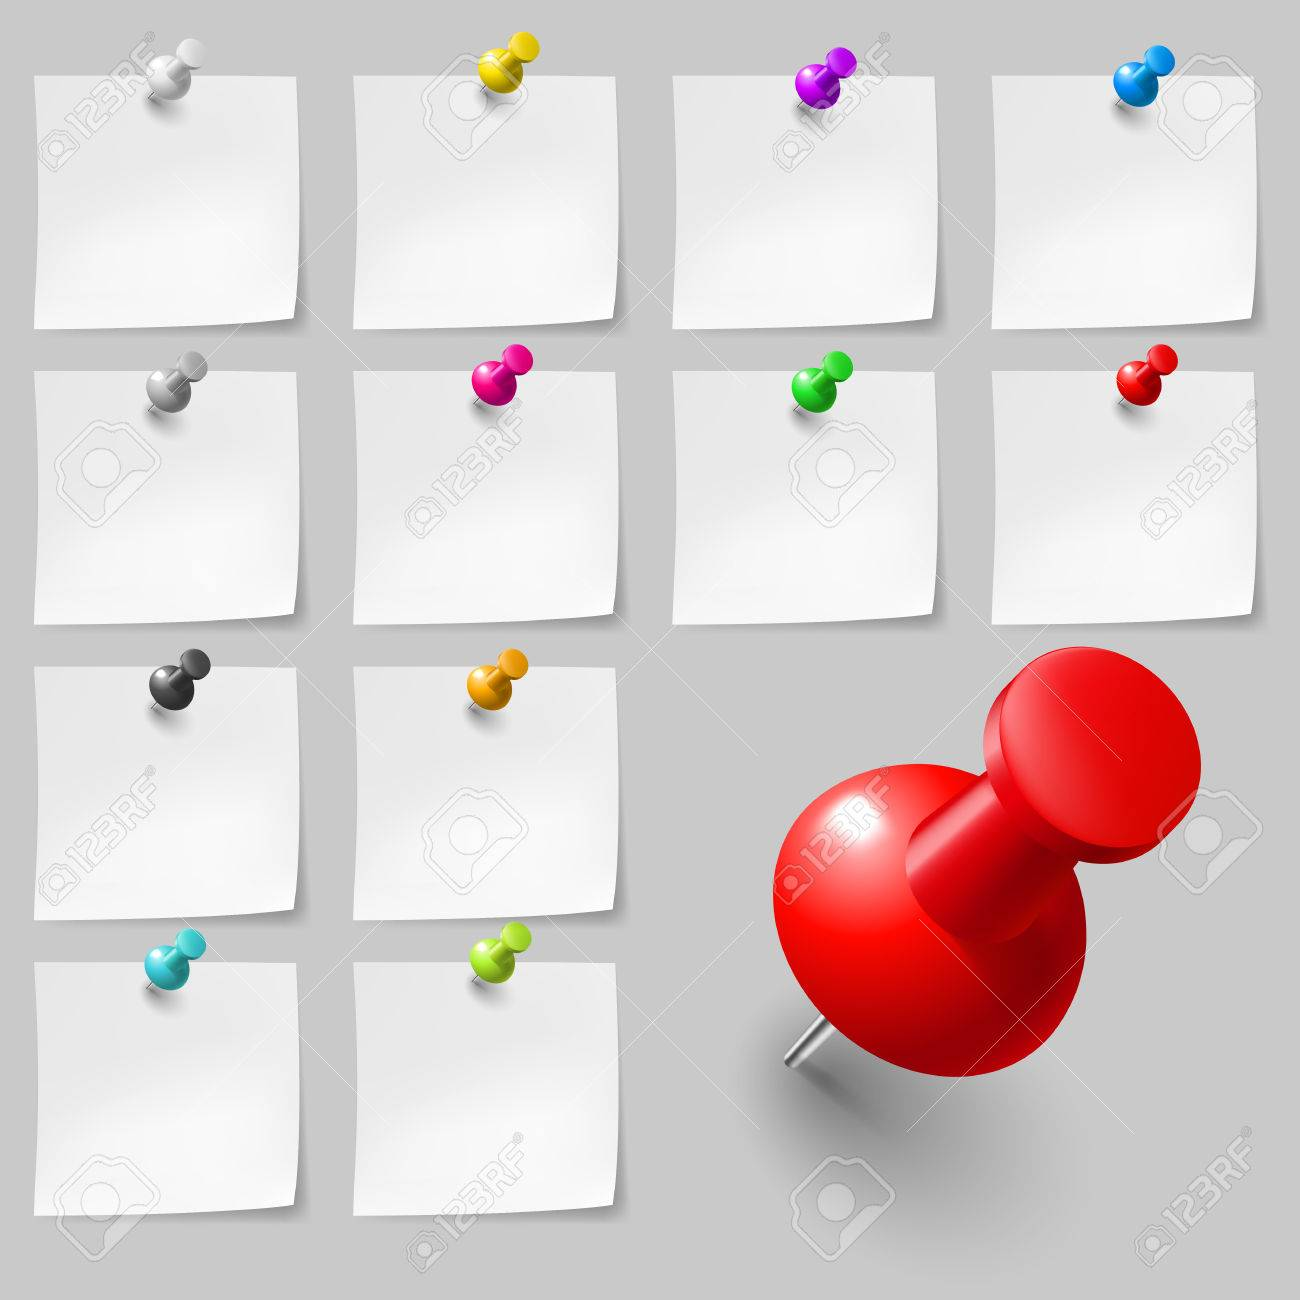 Set of Blank sticky notes with pushpins on gray background - 44152984